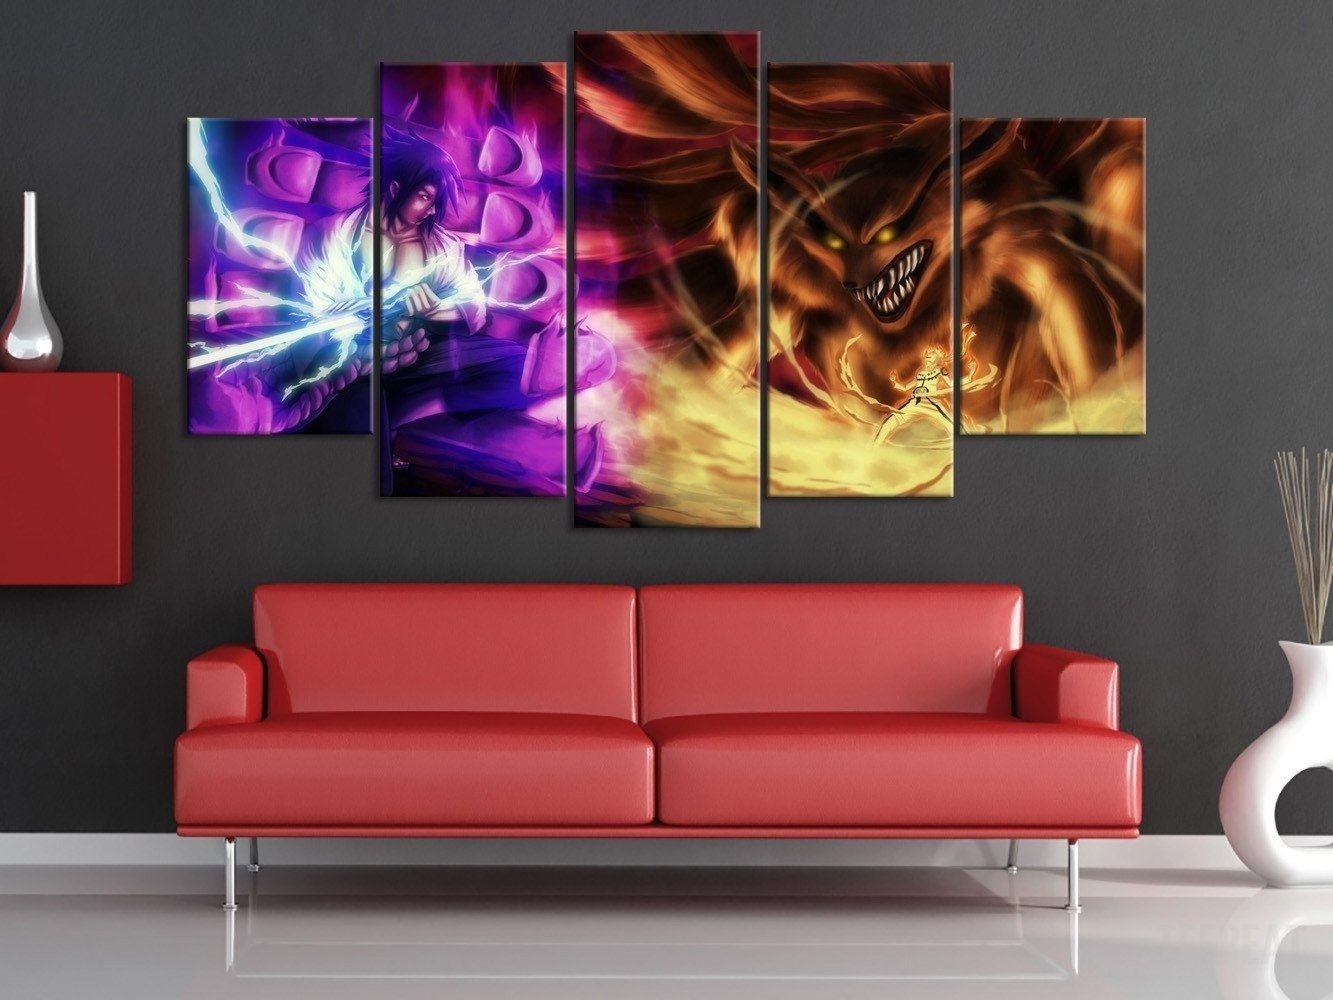 Susano Vs 9 Tail Beast 5 Piece Canvas | Cinema Themed Wall In Most Popular Framed Canvas Art Prints (Gallery 12 of 15)